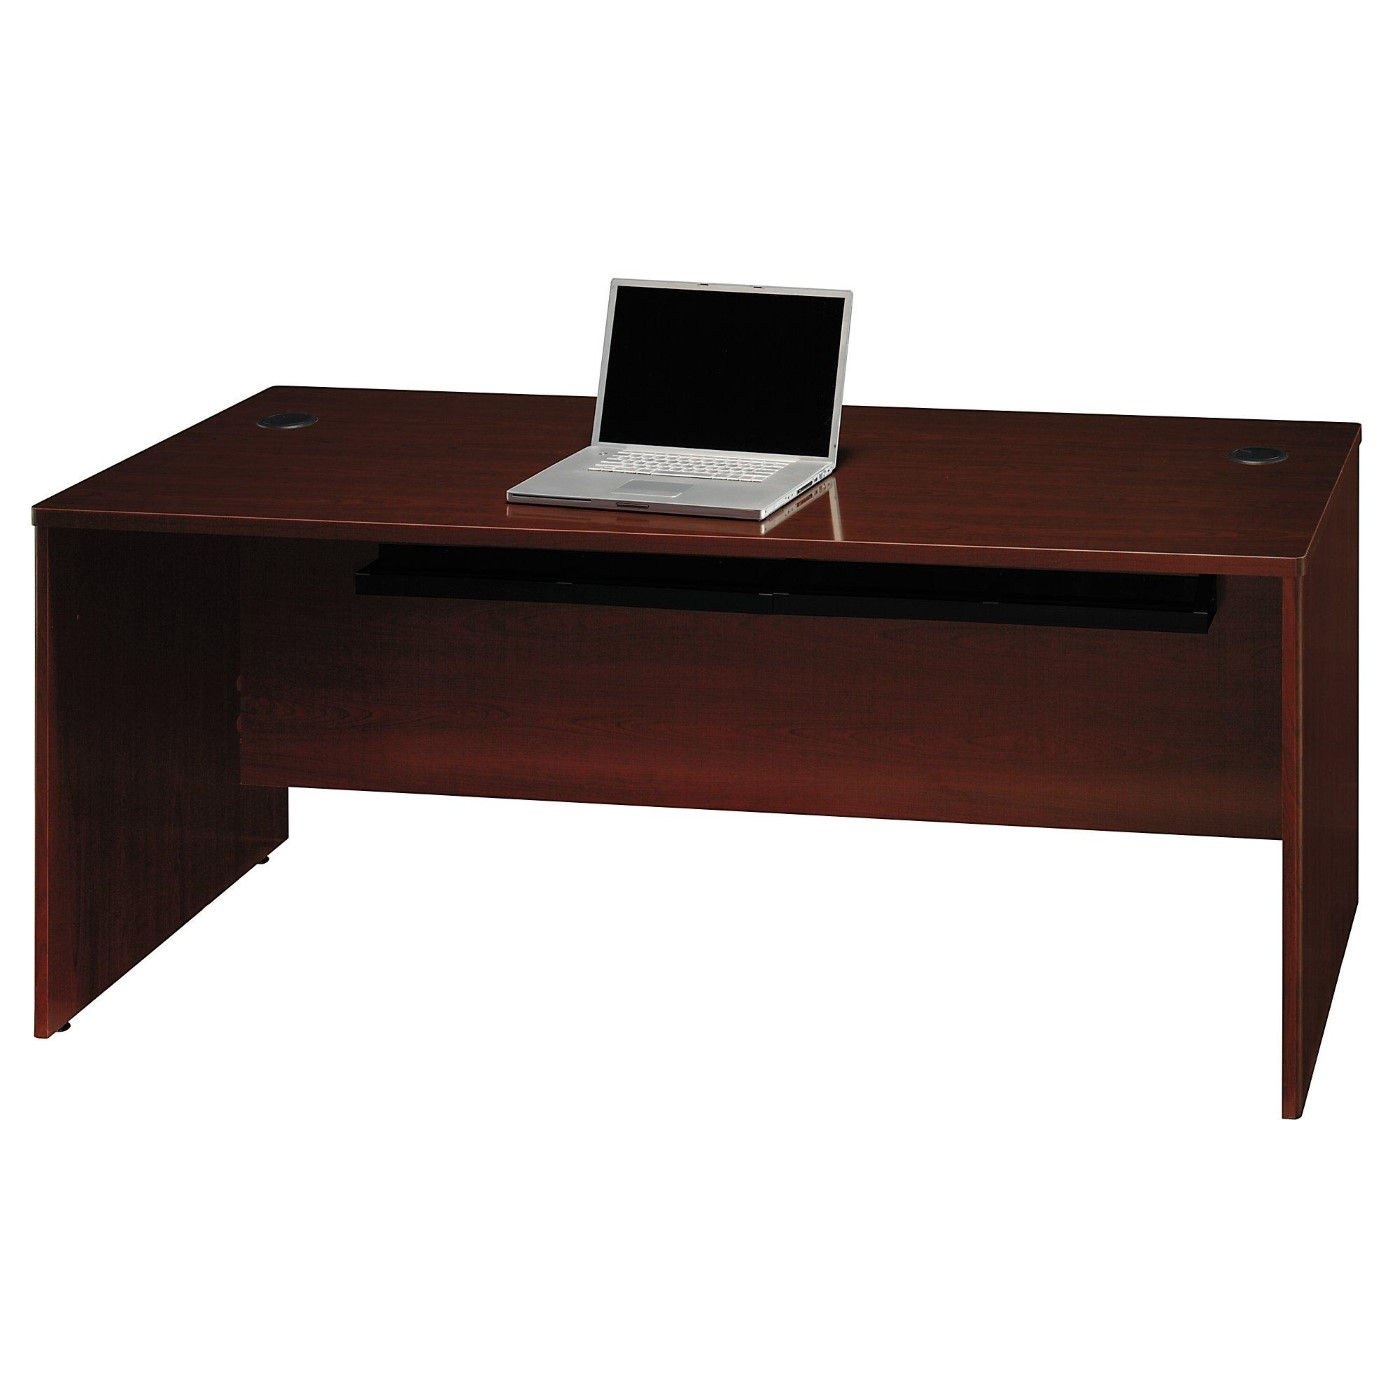 <font color=#c60><b>BUSH BUSINESS FURNITURE QUANTUM 72W DESK. FREE SHIPPING</font></b>